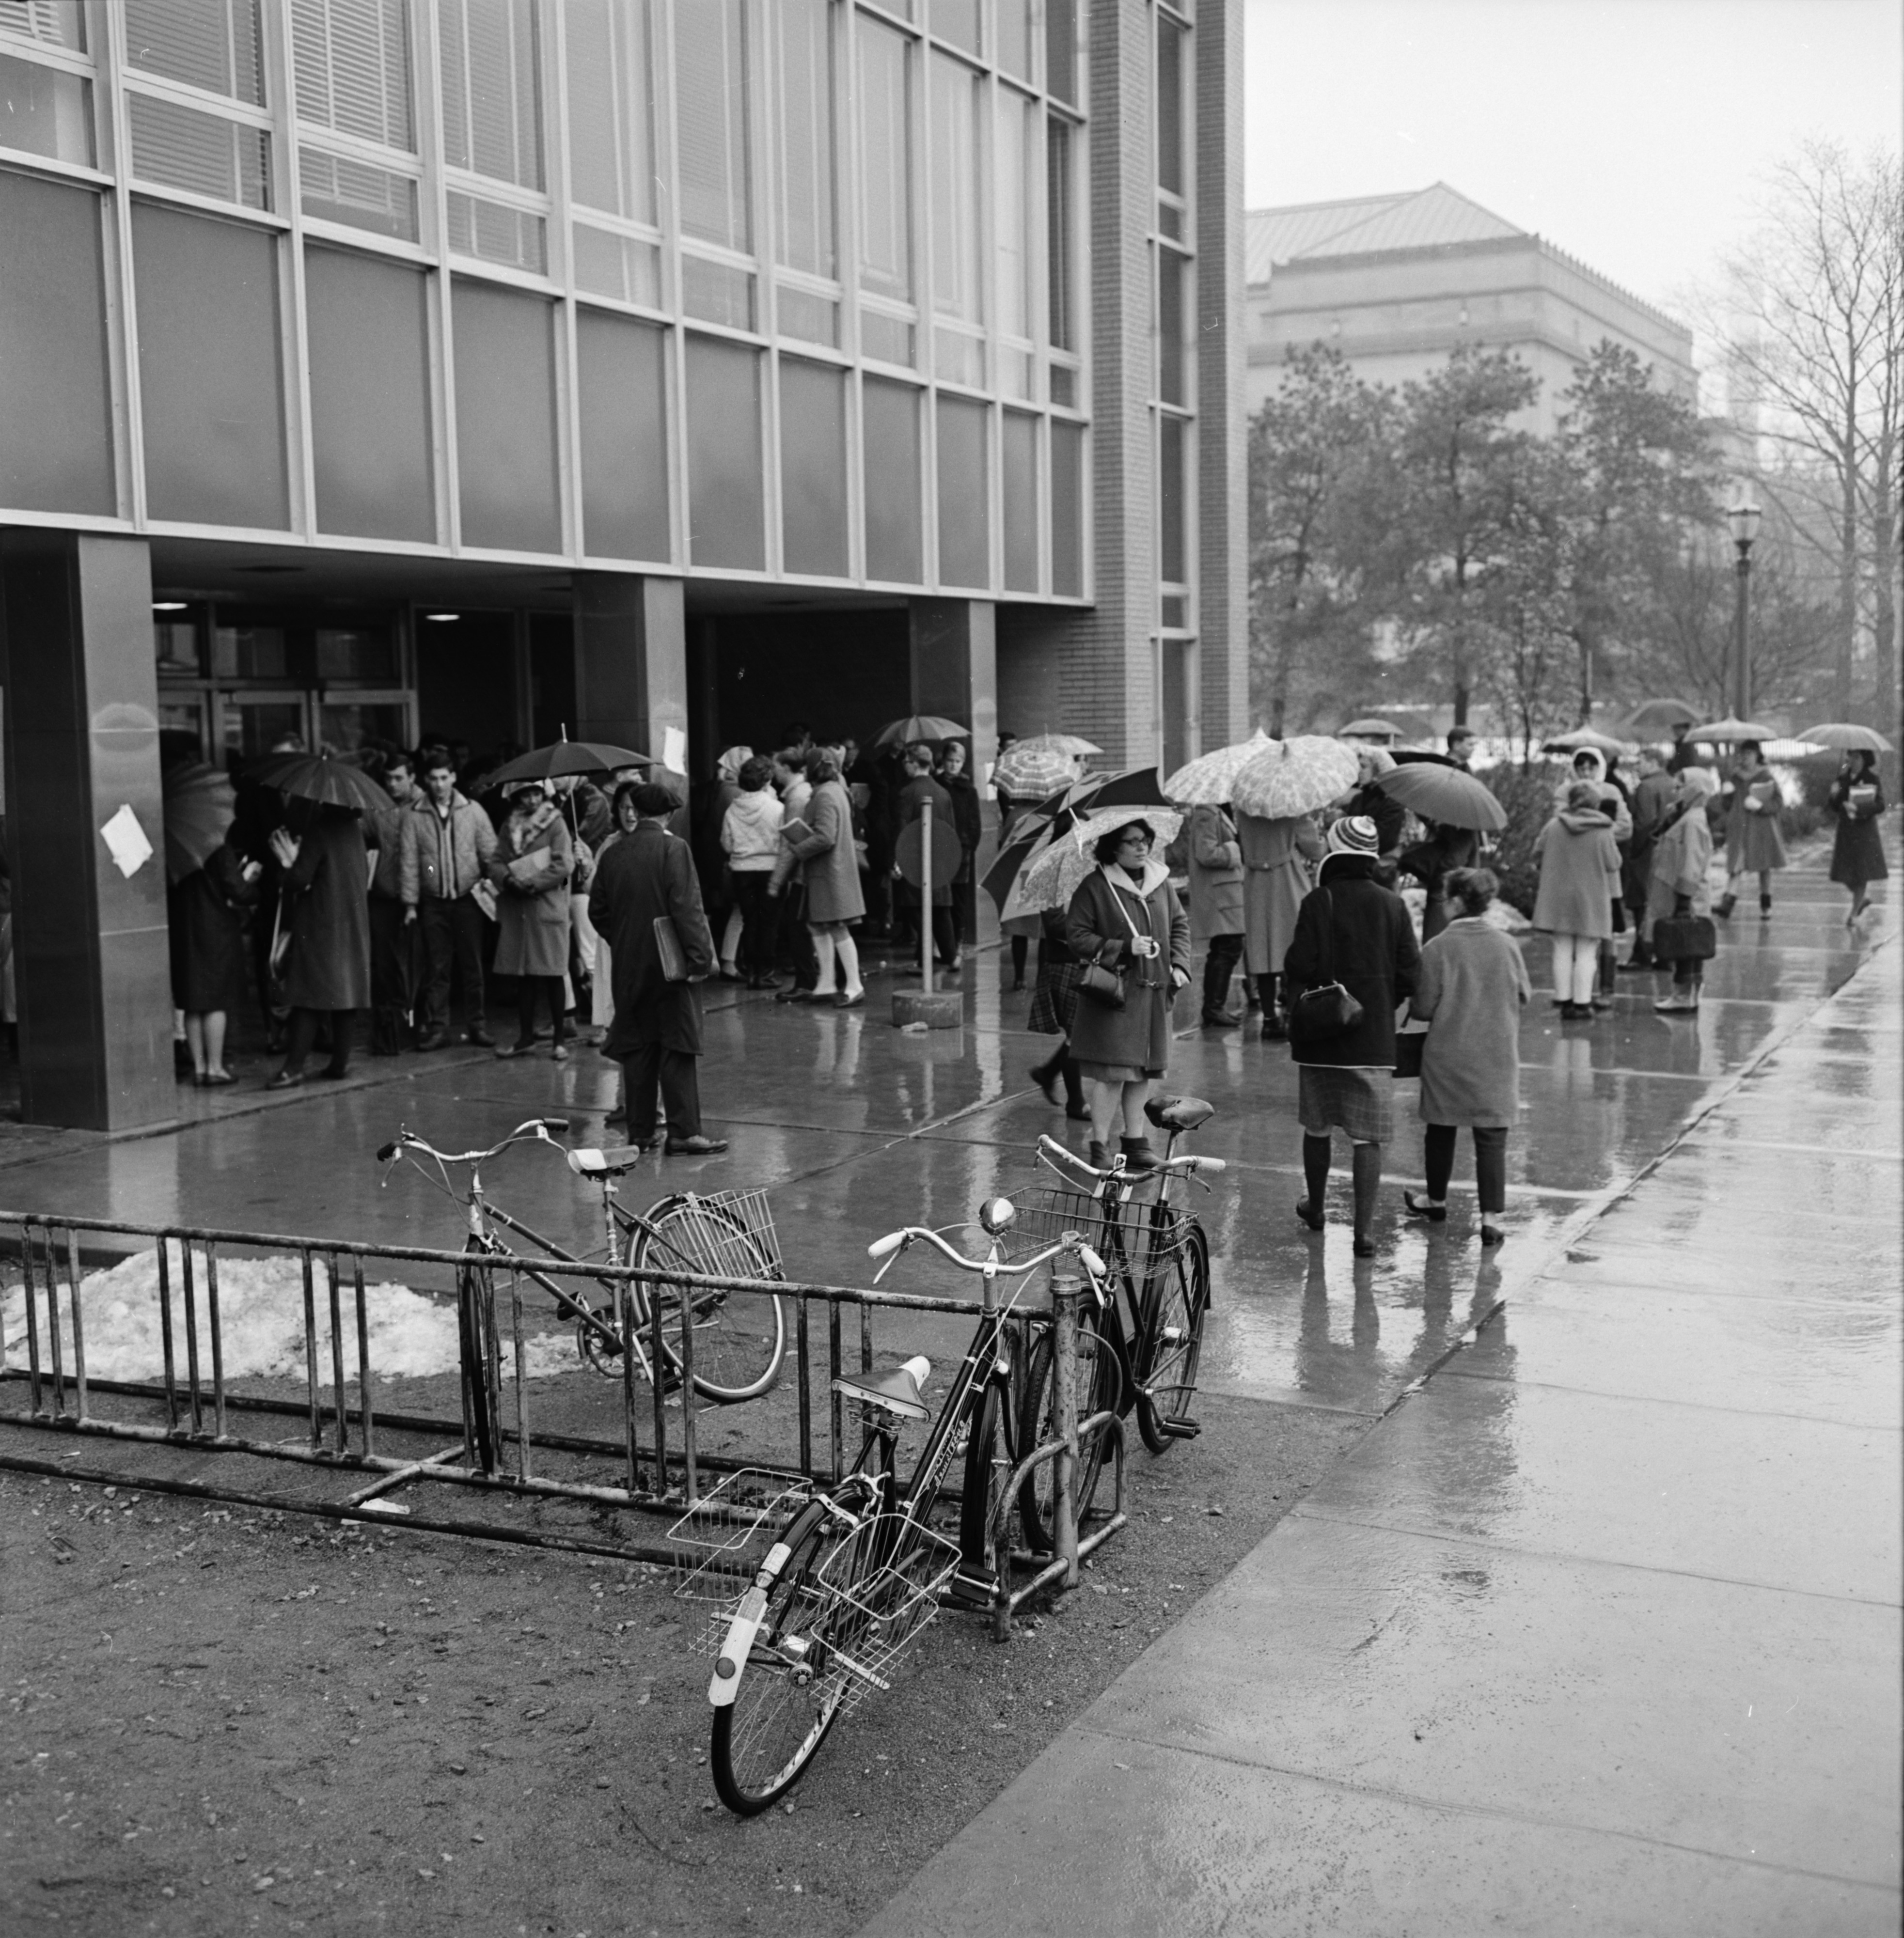 Students evacuate Frieze Building after bomb scare, December 1964 image